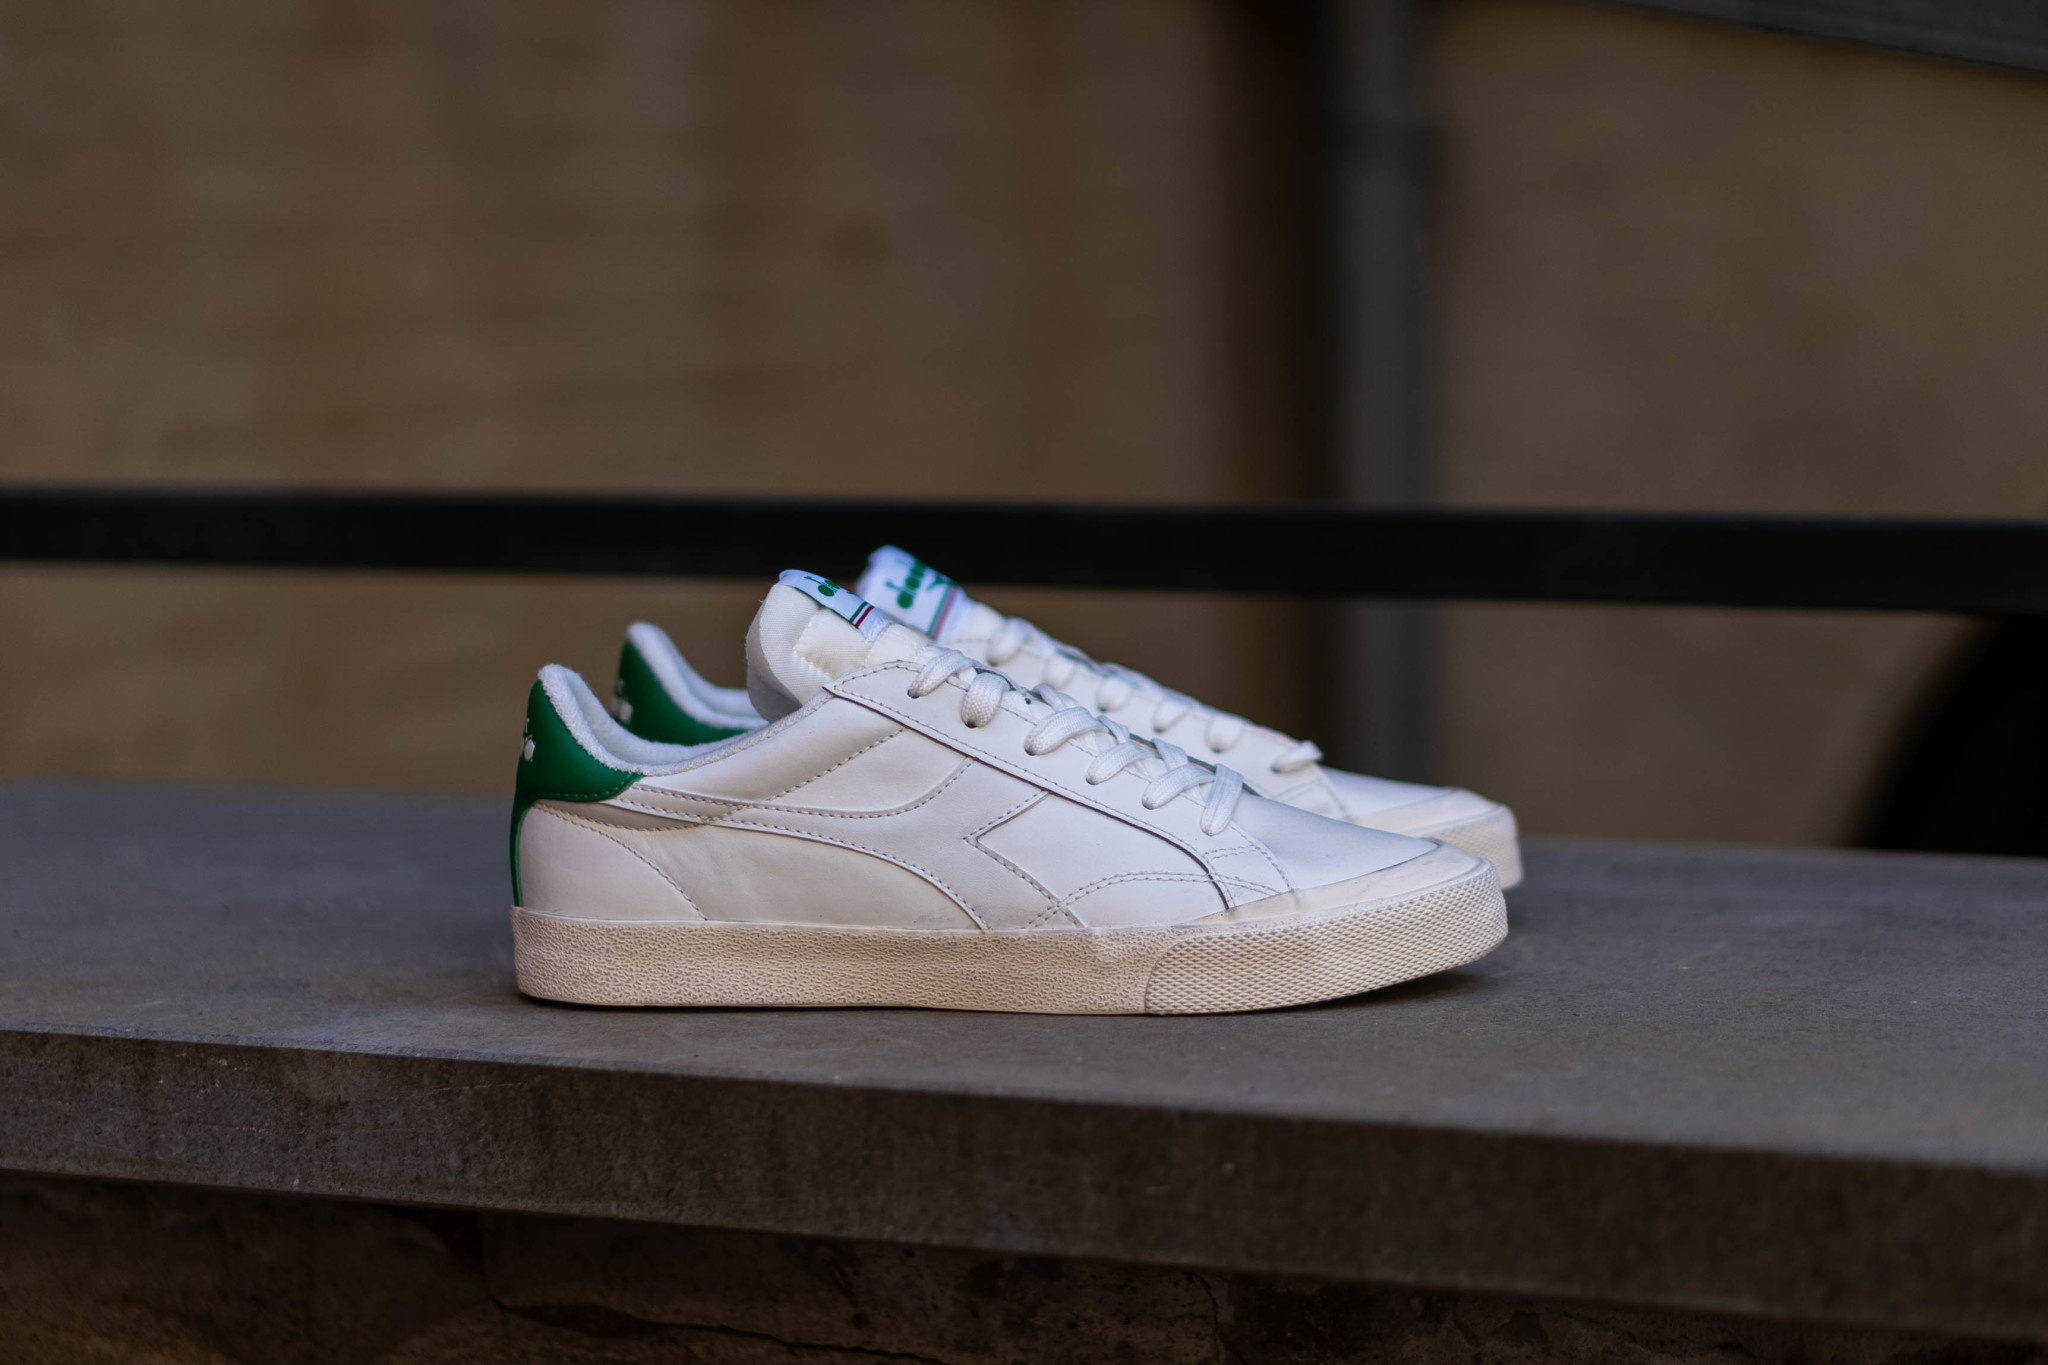 DIADORA MELODY LEATHER DIRTY White/ Peas Cream